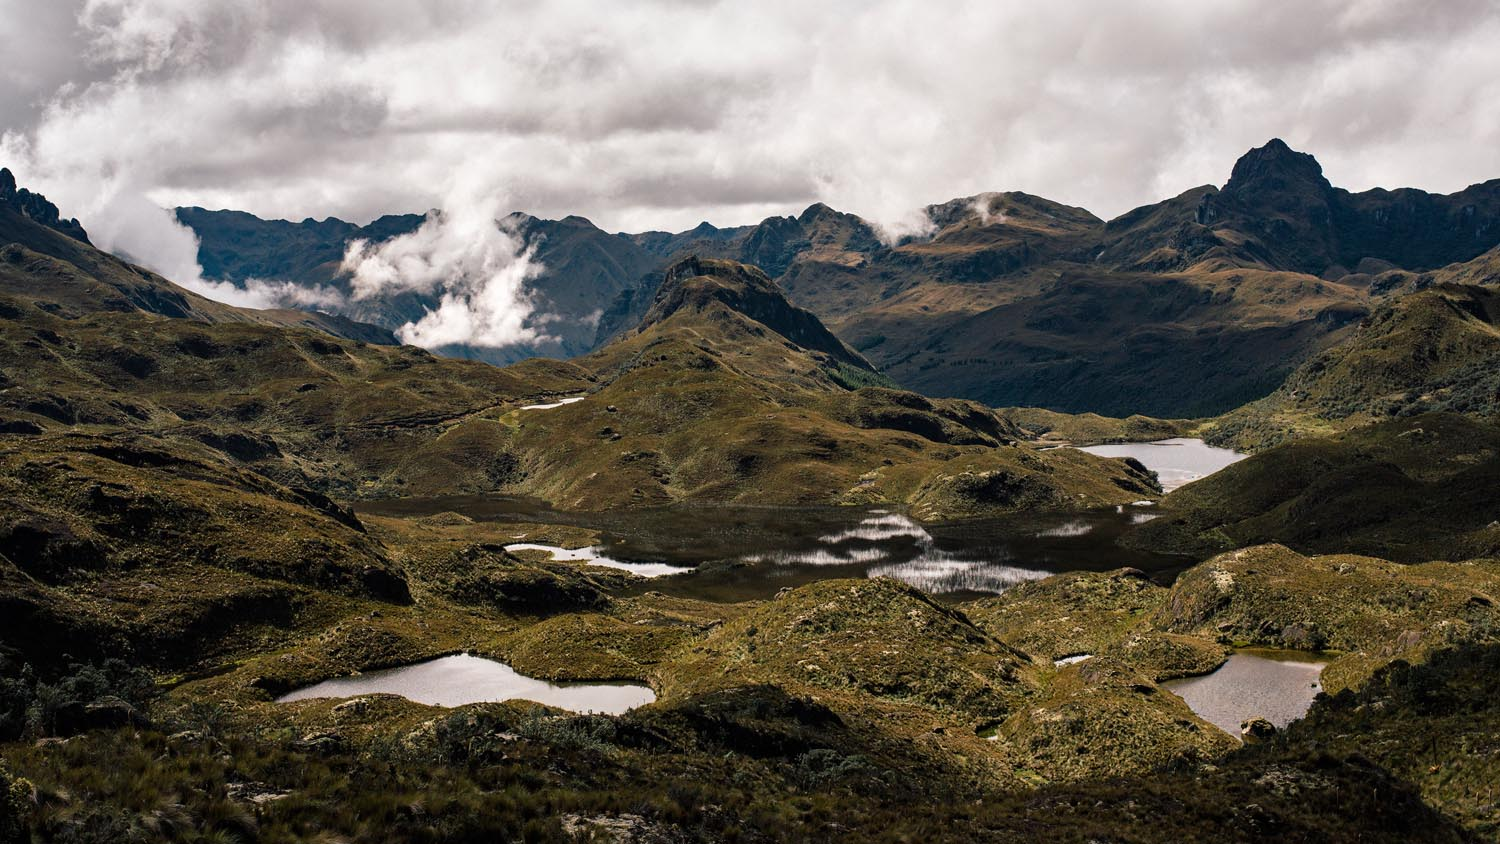 One of the amazing views in Cajas National Park.